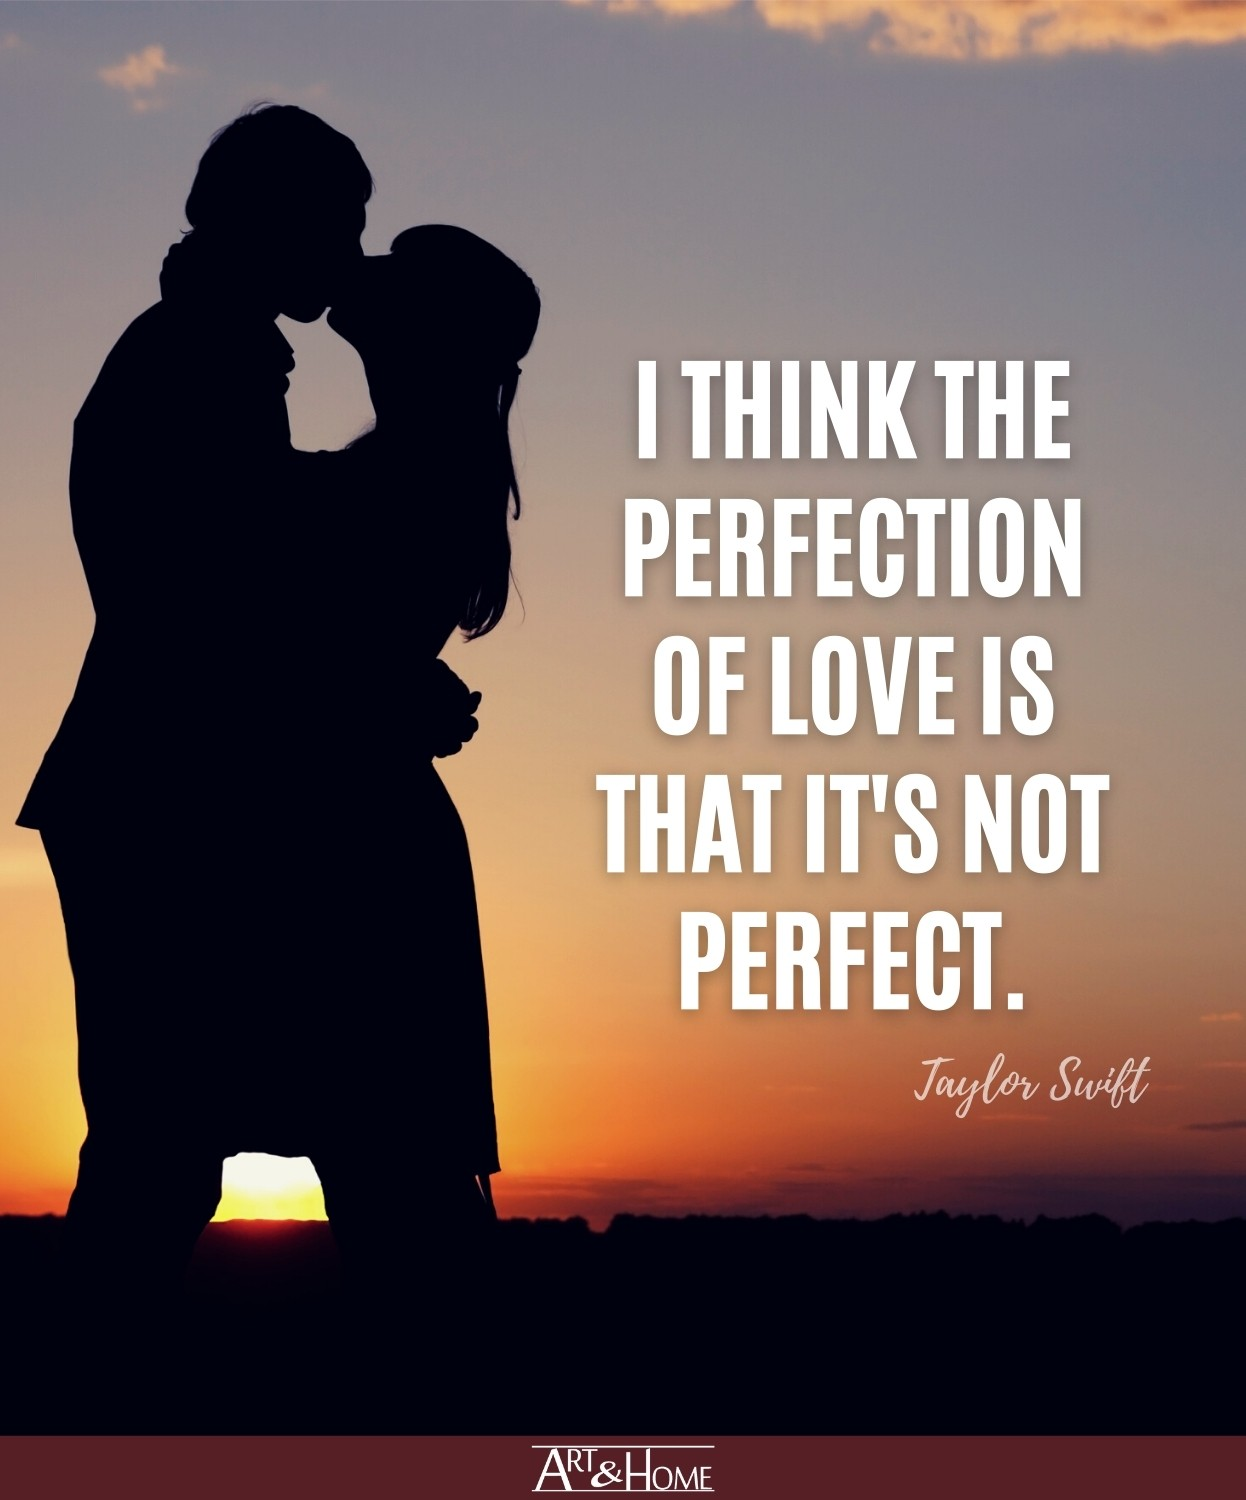 Taylor Swift Love Quote